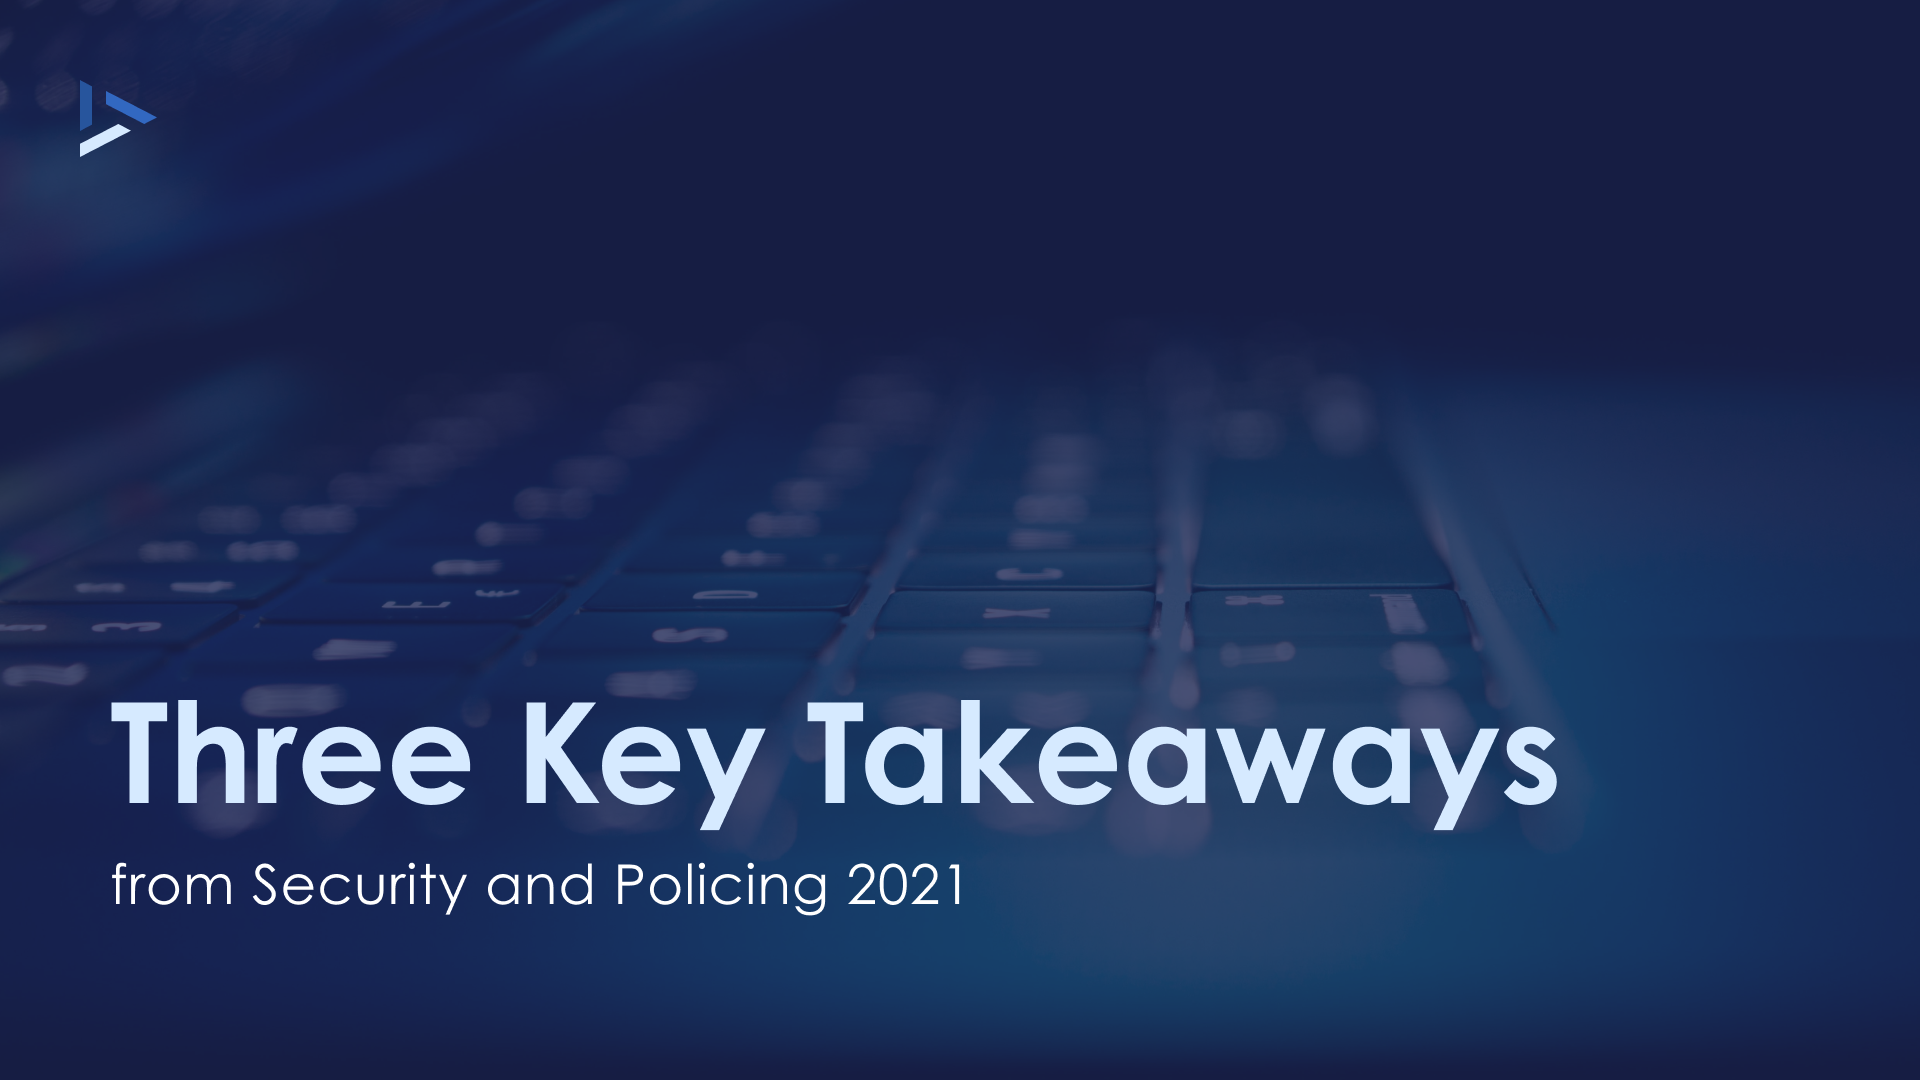 Three Key Takeaways from Security and Policing 2021